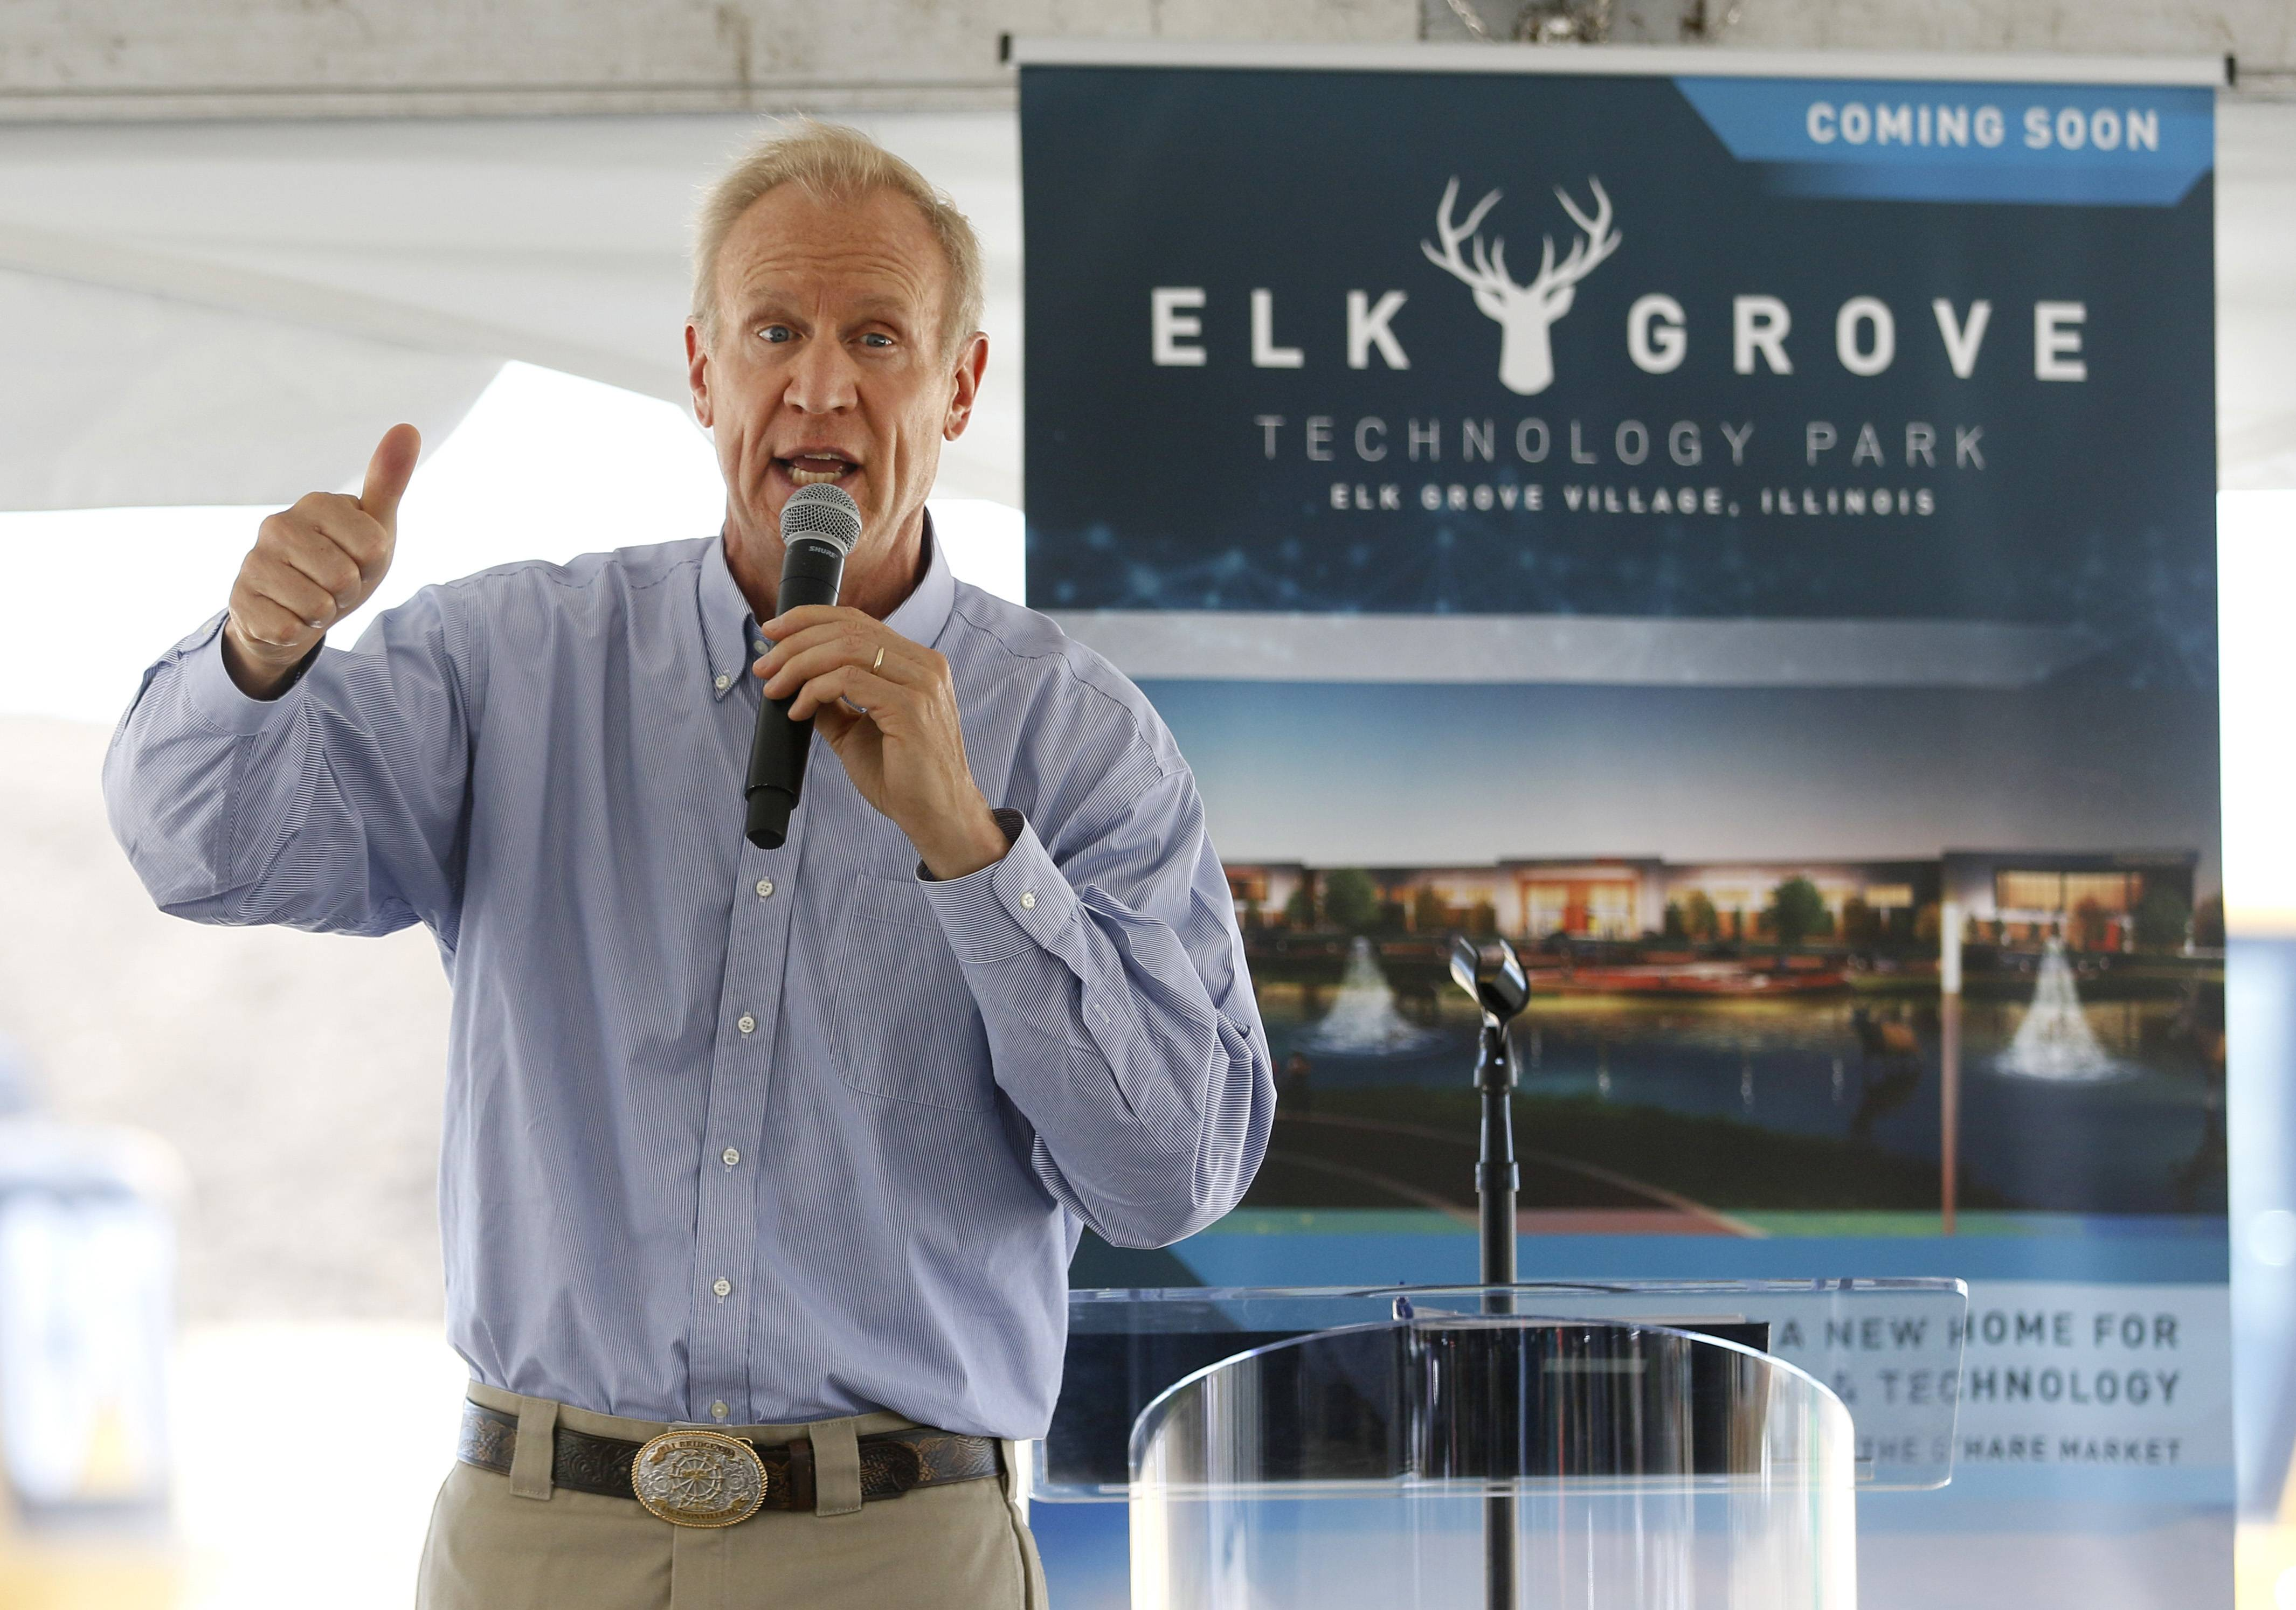 Gov. Bruce Rauner gives the thumbs-up Wednesday during a groundbreaking ceremony for the new $1 billion technology park planned for 85 acres on the north side of Elk Grove Village.